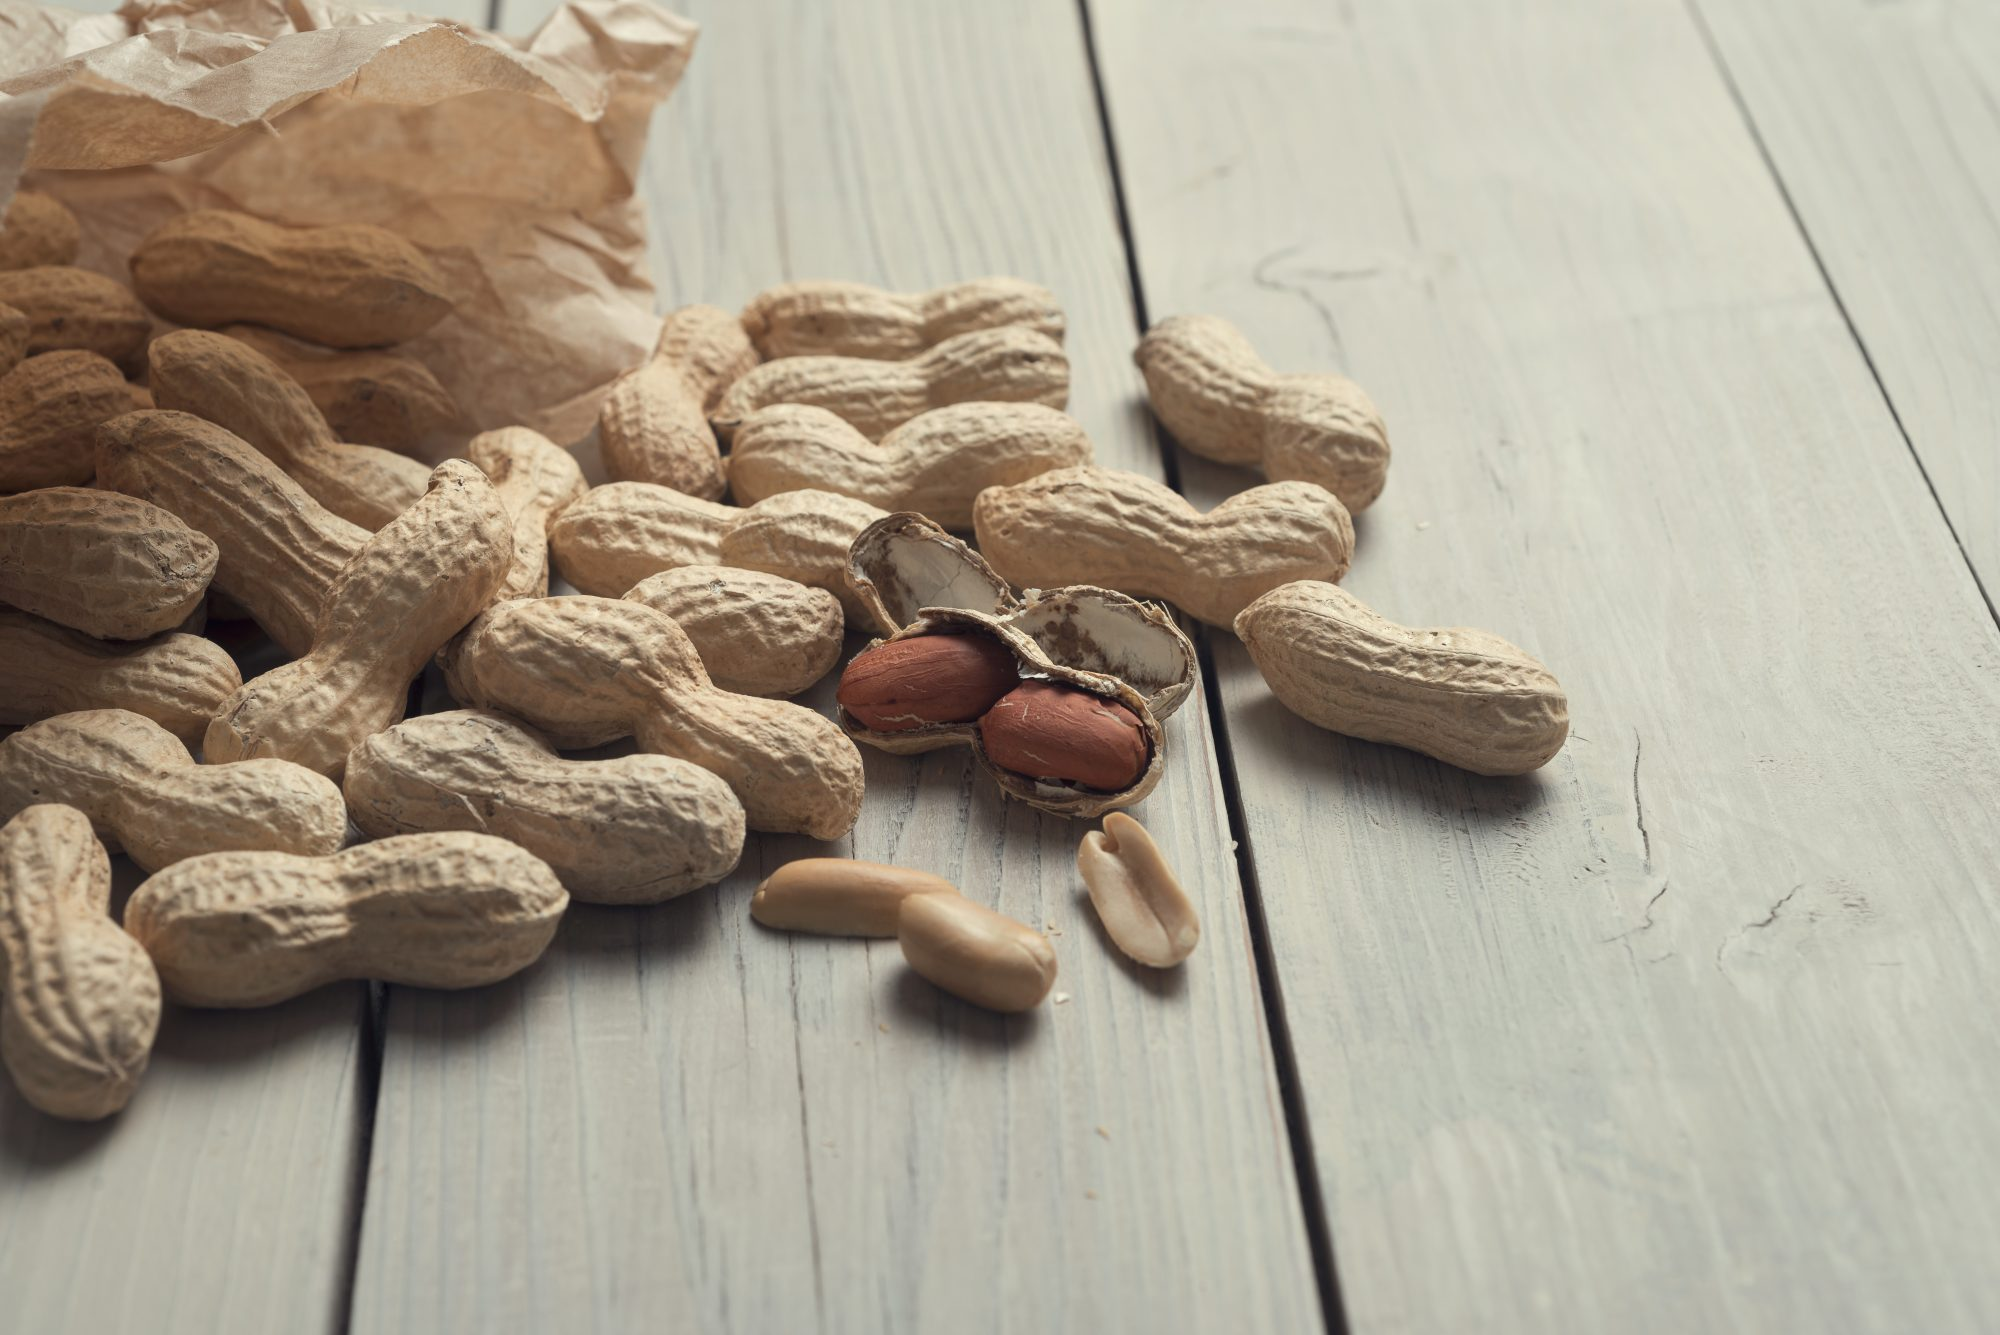 Why I Eat Peanuts With the Shell On